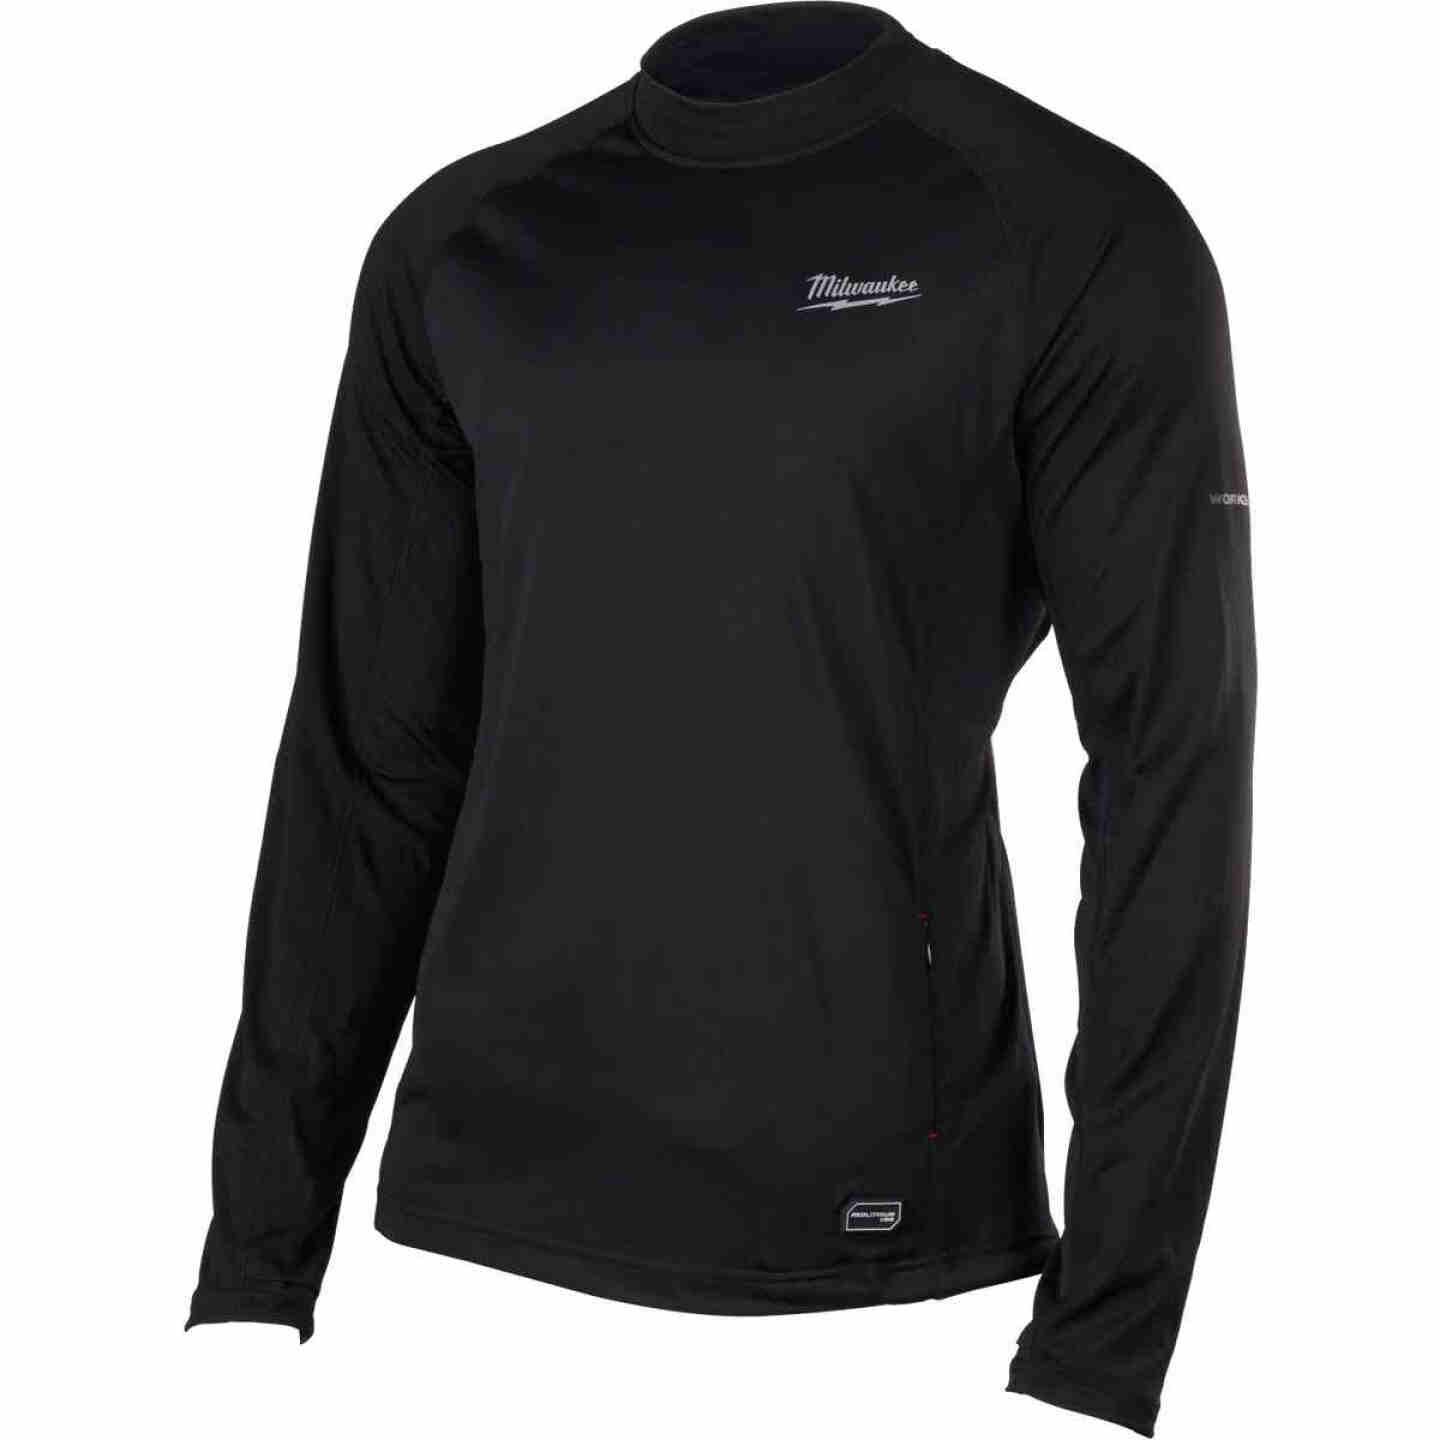 Milwaukee Workskin XL Black Heated Midweight Base Layer Shirt Image 6